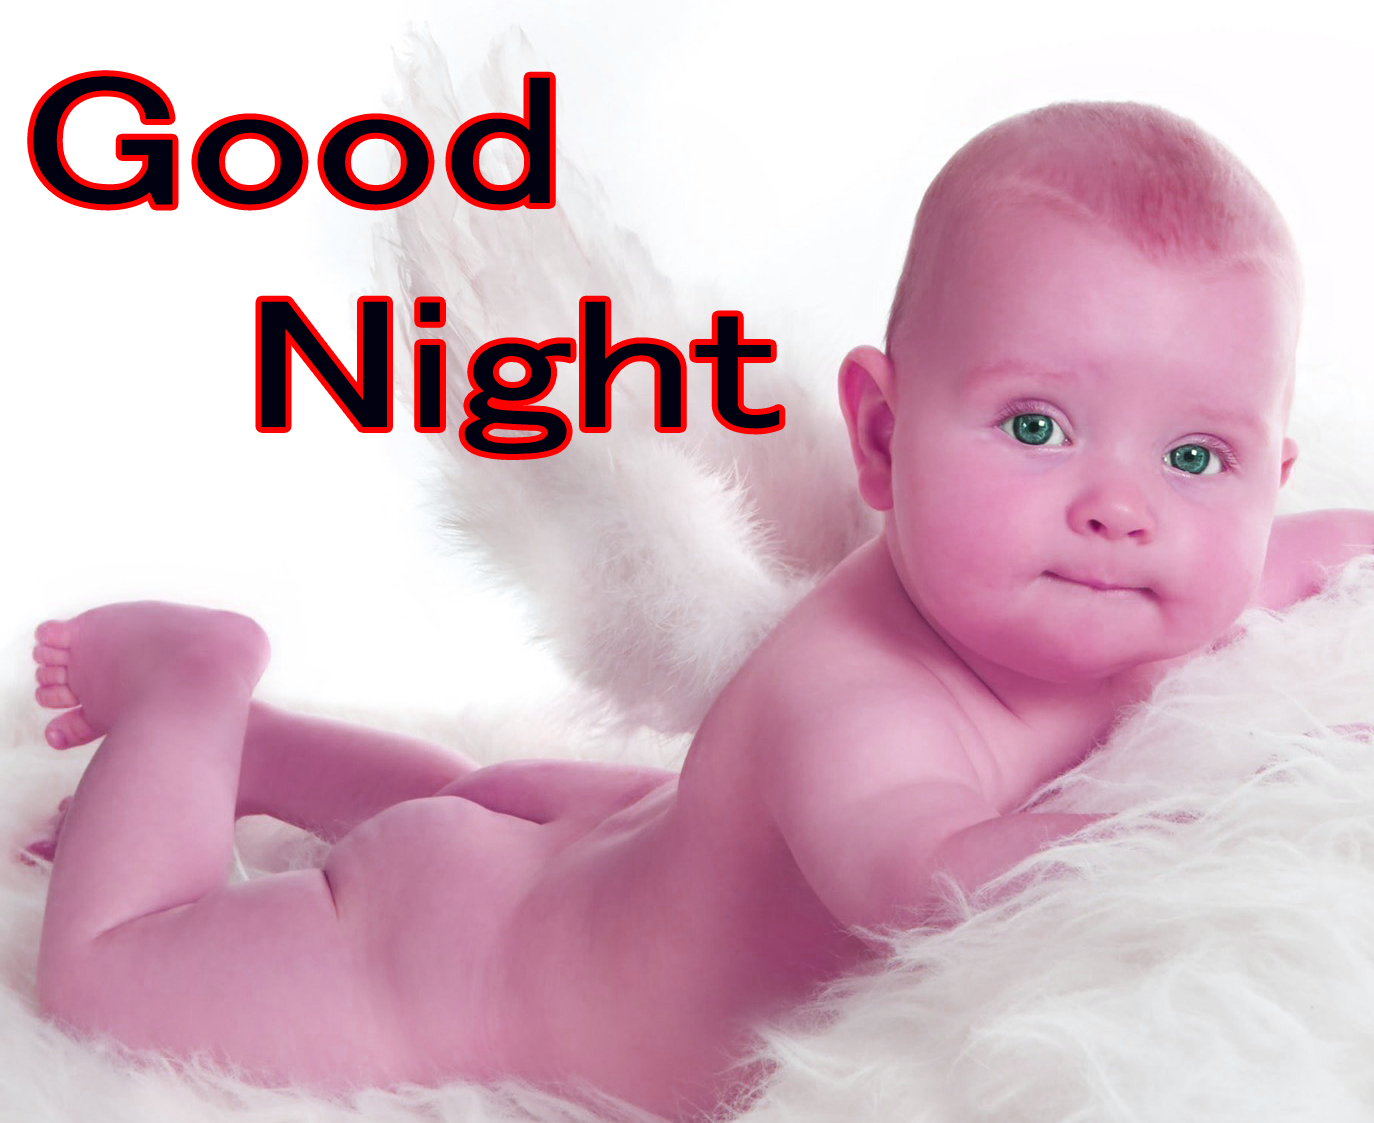 GOOD NIGHT IMAGES WITH CUTE BABY BOYS & GIRLS PICS PICTURES